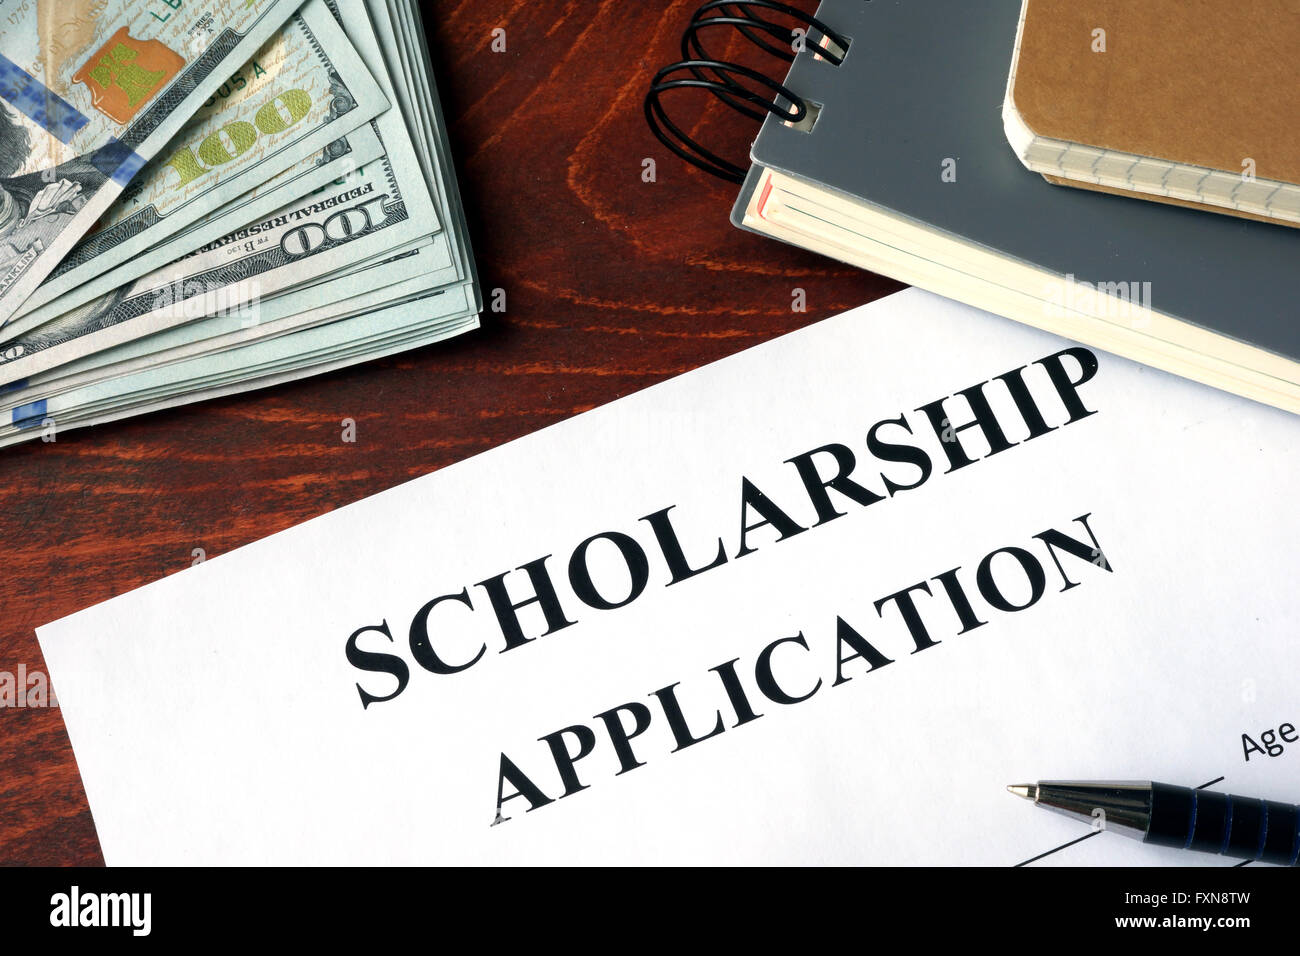 Scholarship Application on a table and dollars. - Stock Image